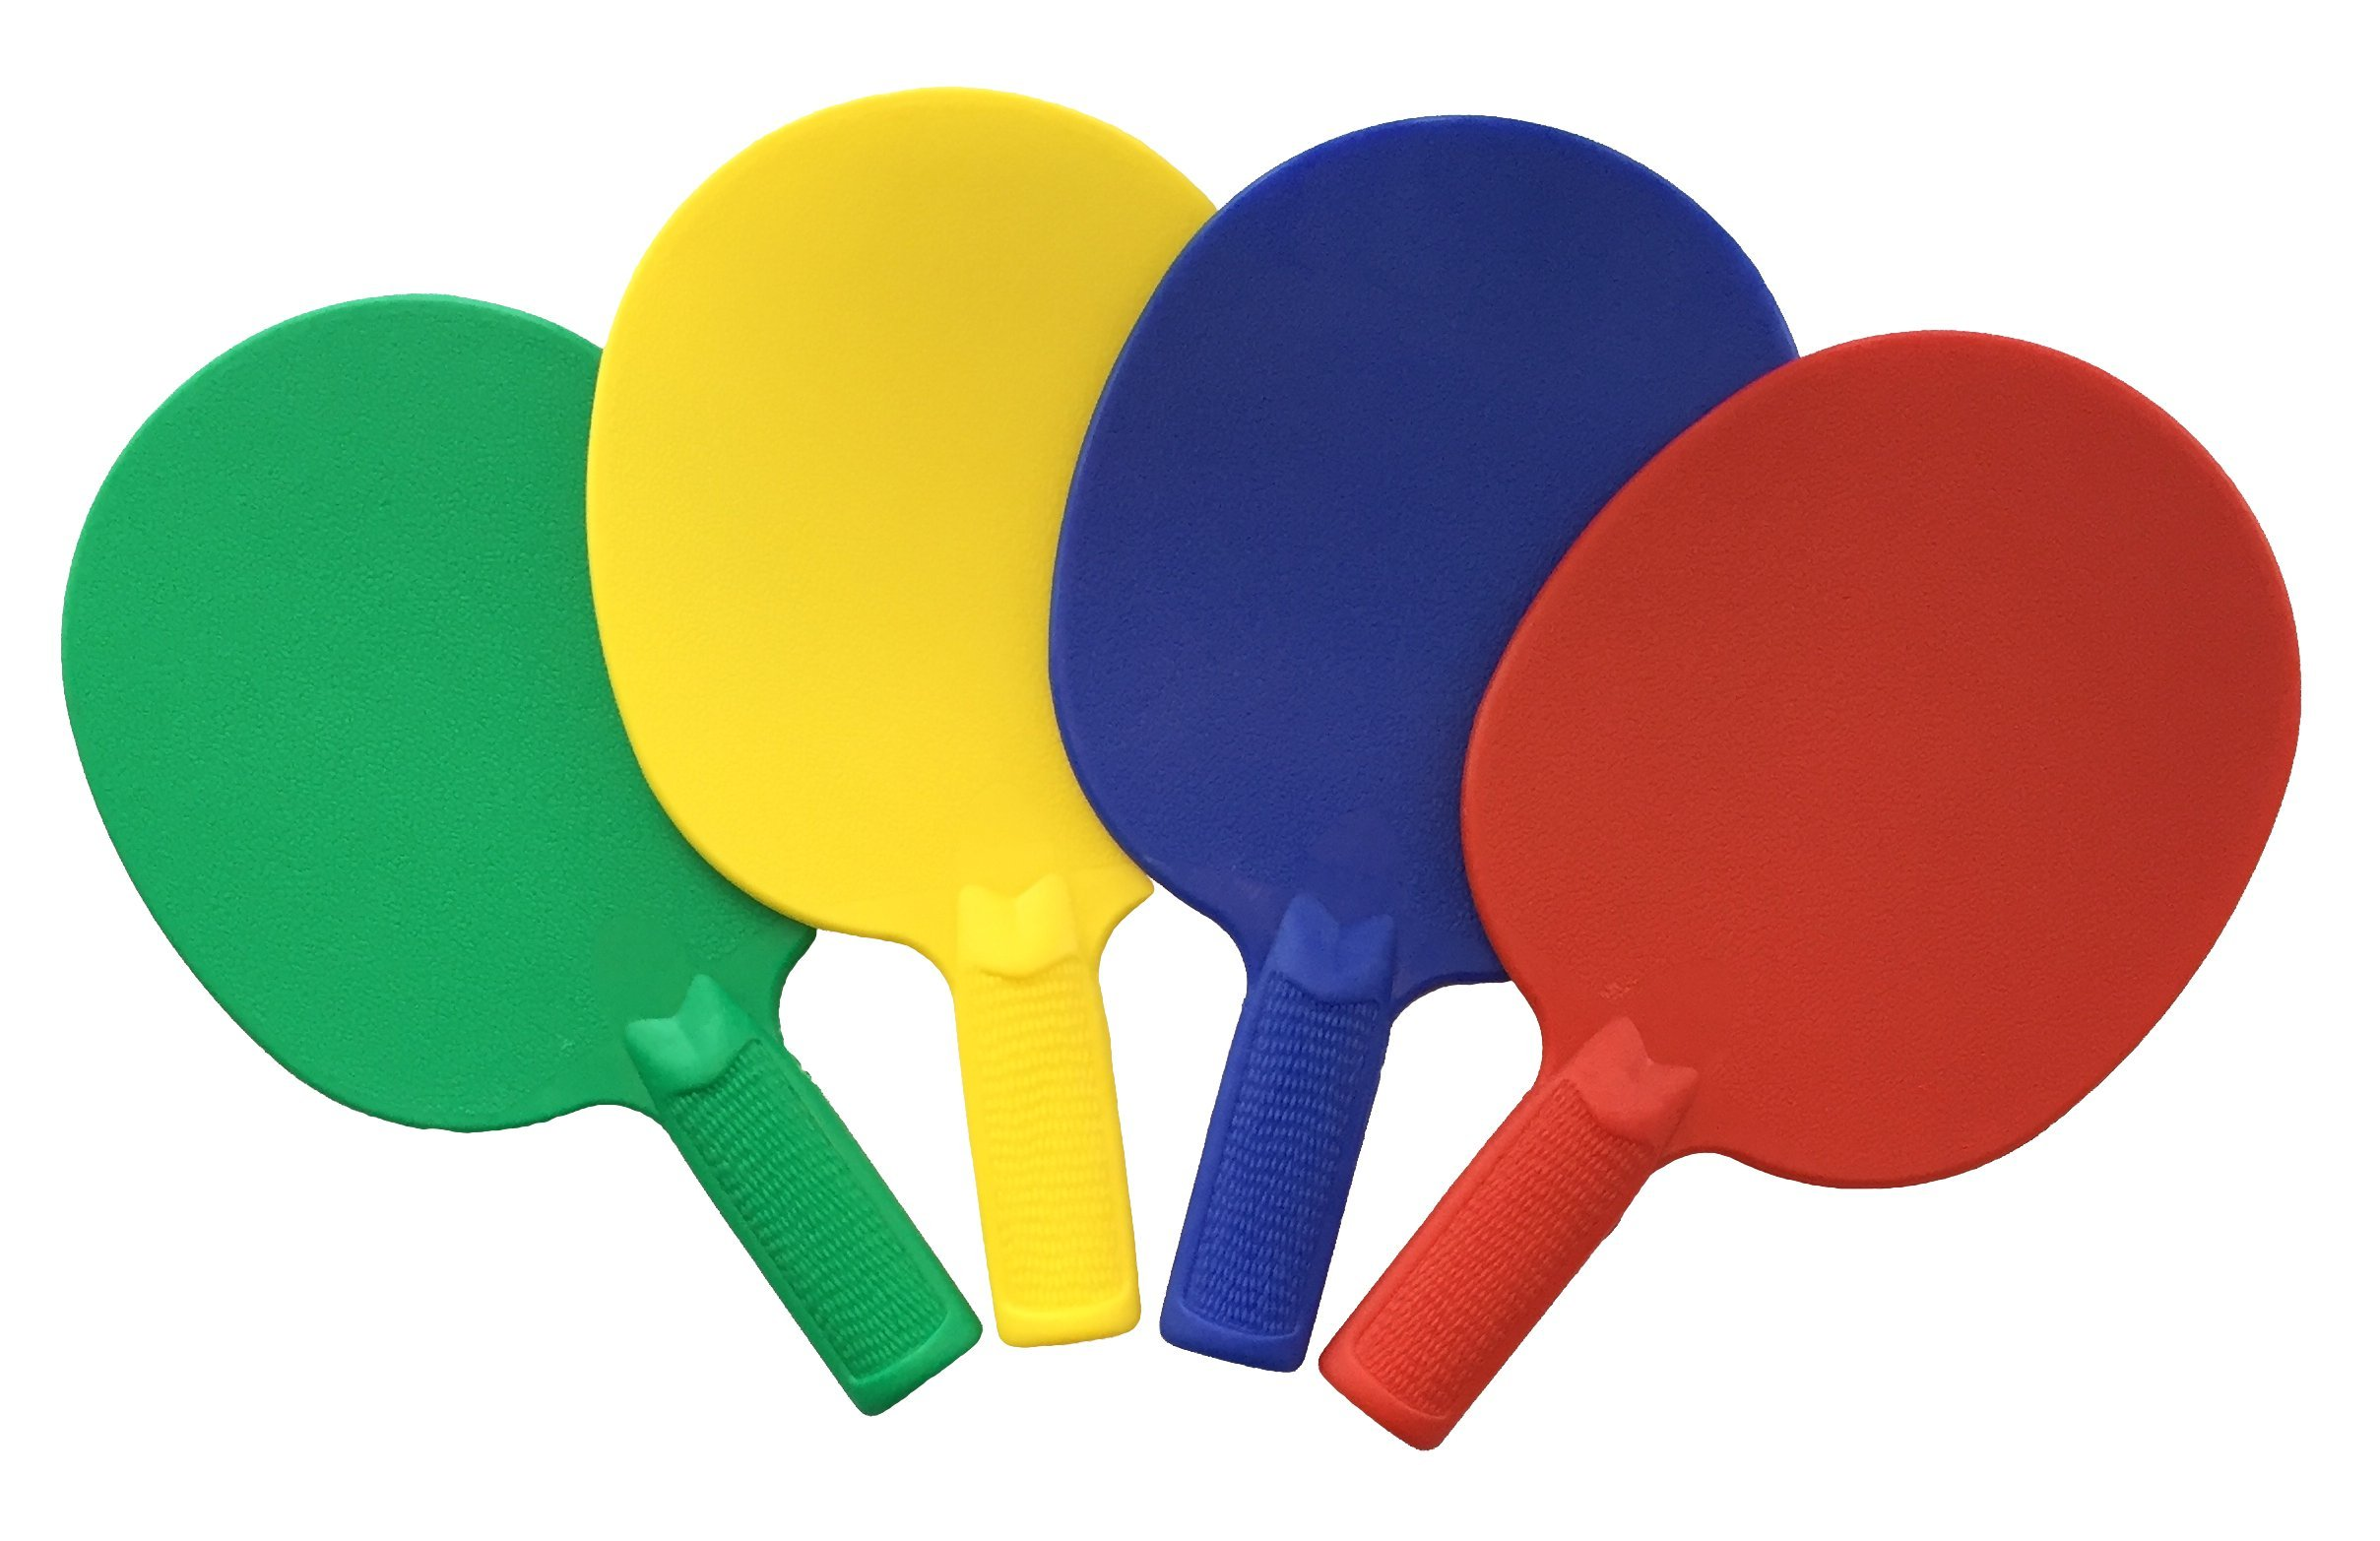 Plastic Ping Pong Paddles - Complete Set of 4 Durable Multi-Color, Blue, Red, Green, Yellow Paddles for Kids or Outdoor Tables at Camp, Vacation, Rec Centers. Textured for Easy Grip and Light Spin.